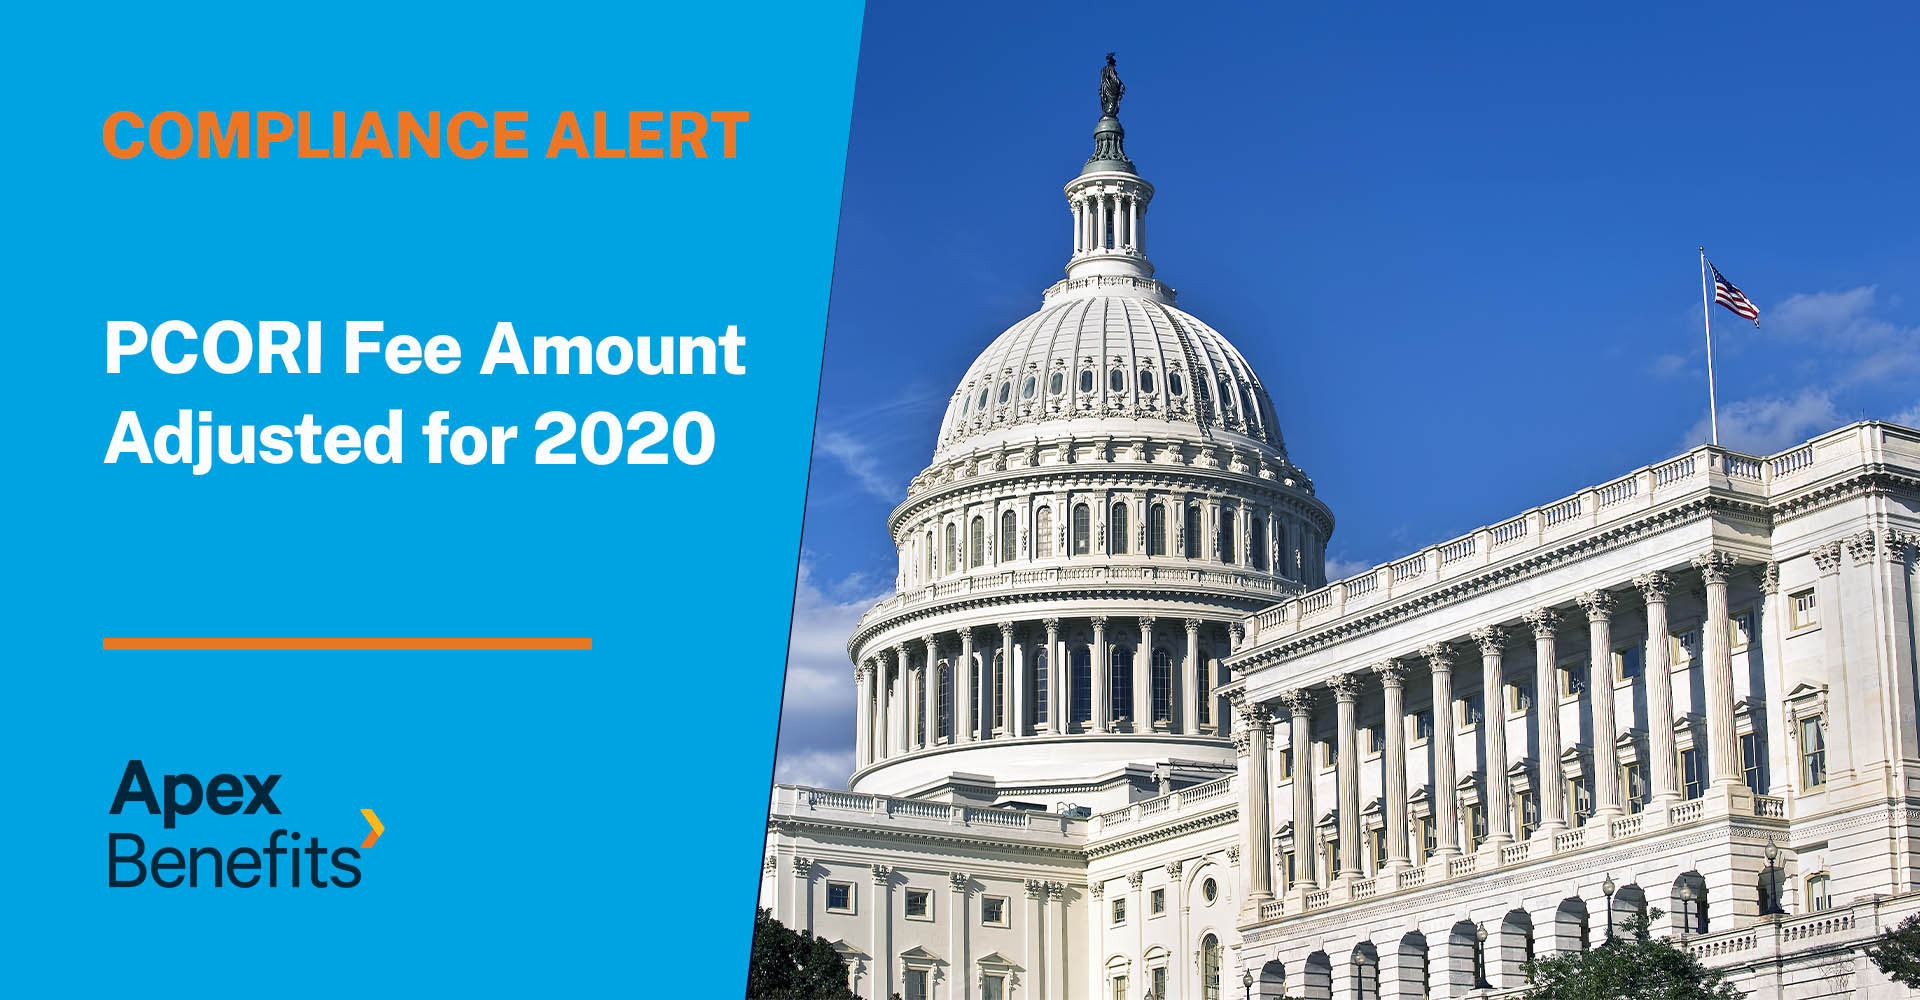 Compliance Alert: PCORI Fee Amount Adjusted for 2020